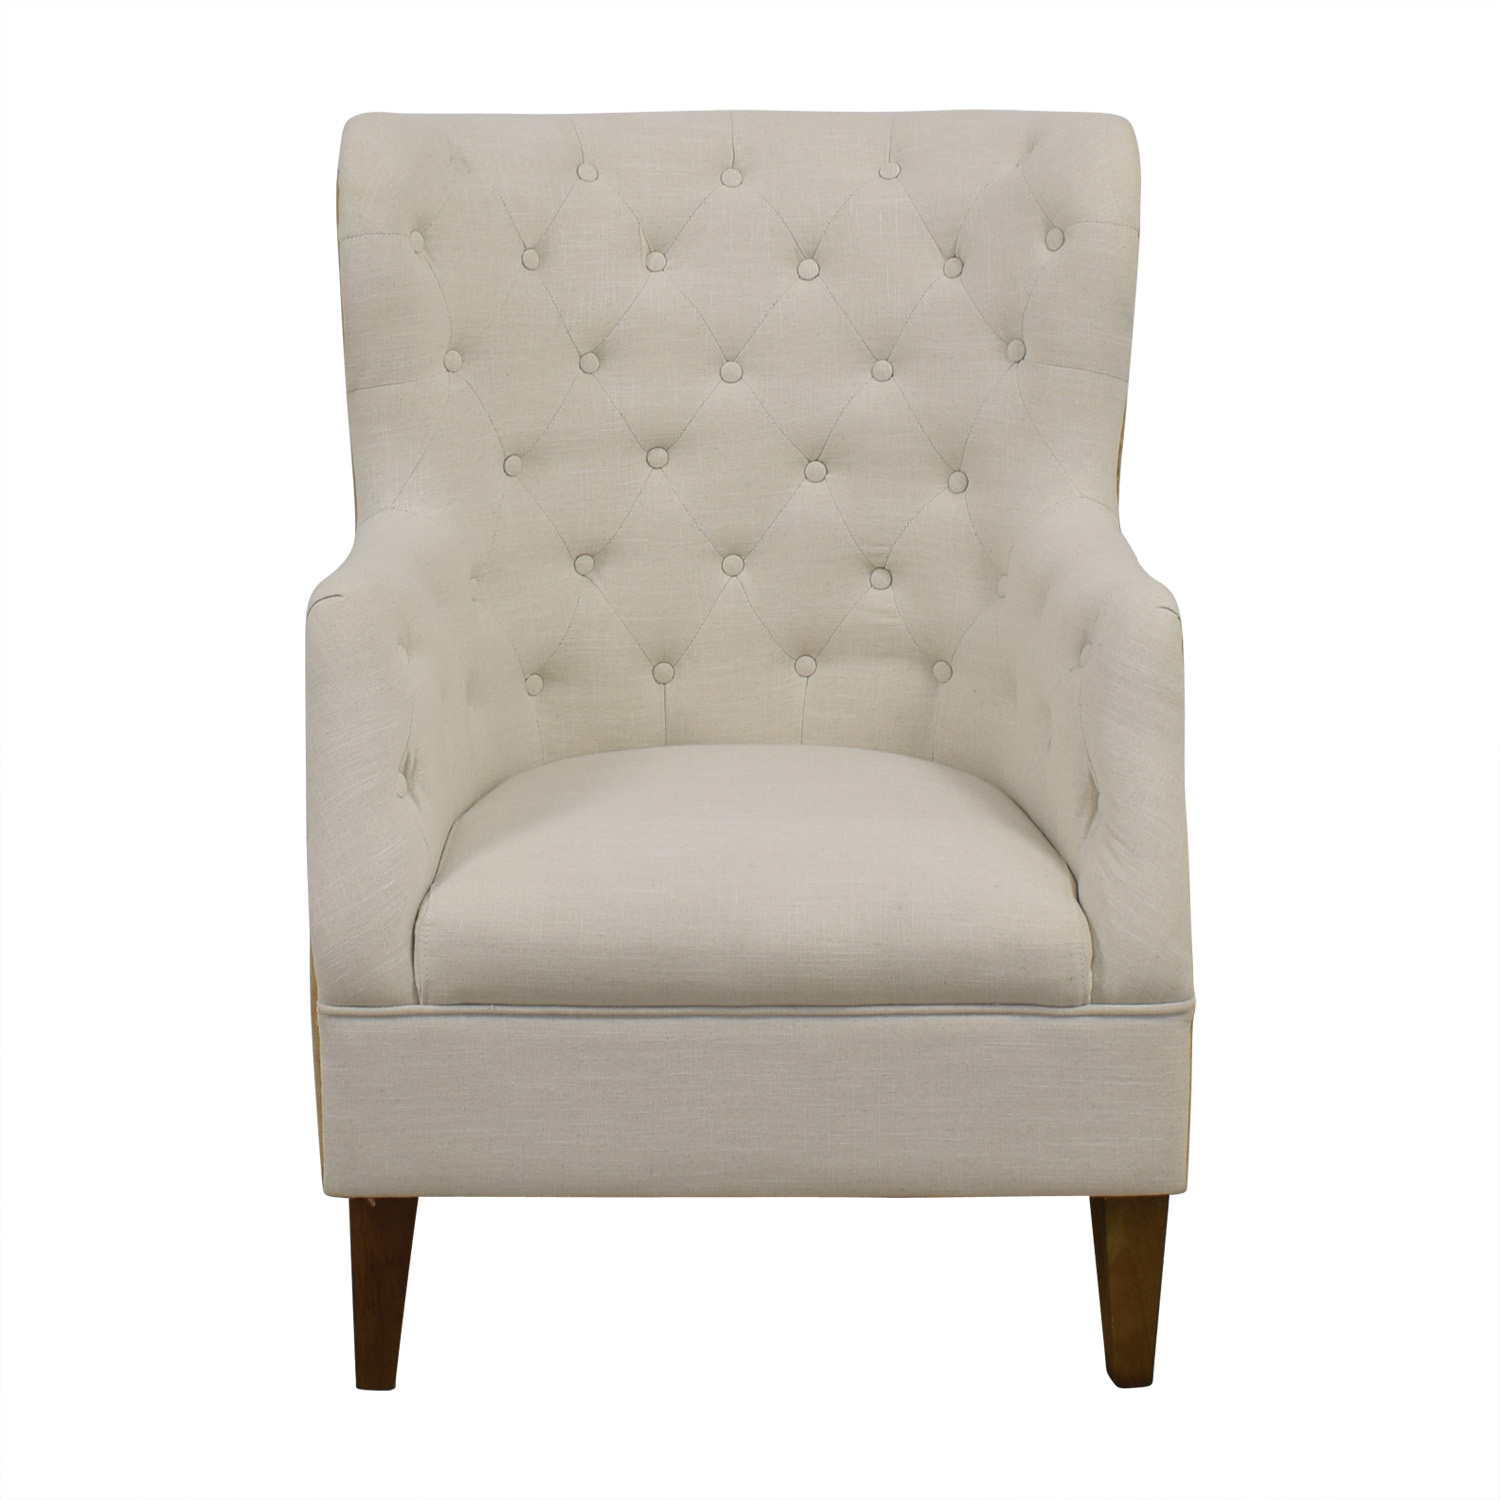 Classic Concepts Classic Concepts White Tufted and Tan Back Wing Back Accent Chair on sale